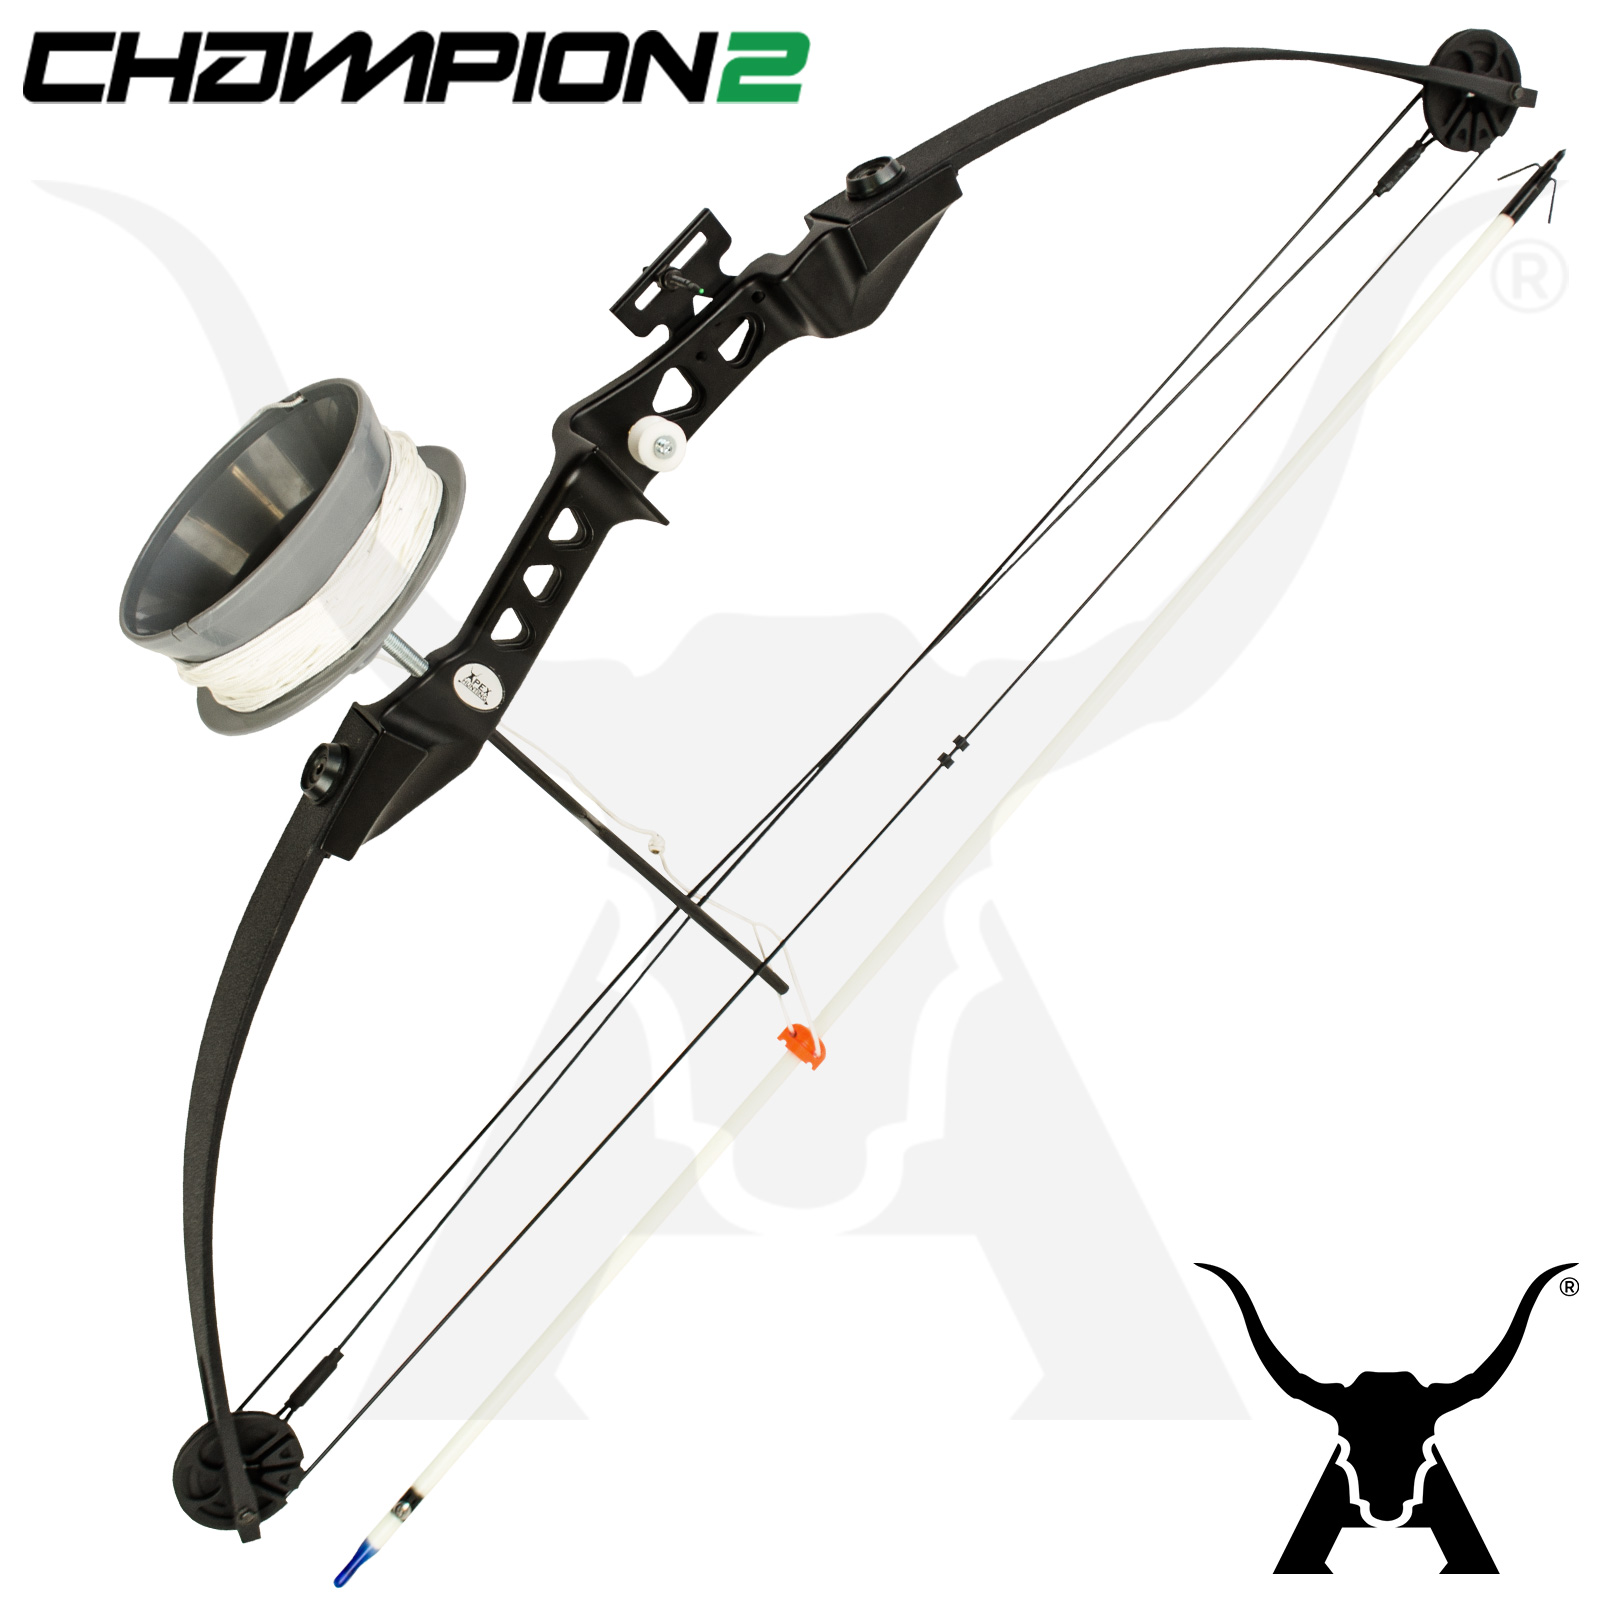 Apex camo champion ii bowfishing kit compound bow reel for Bow fishing reel